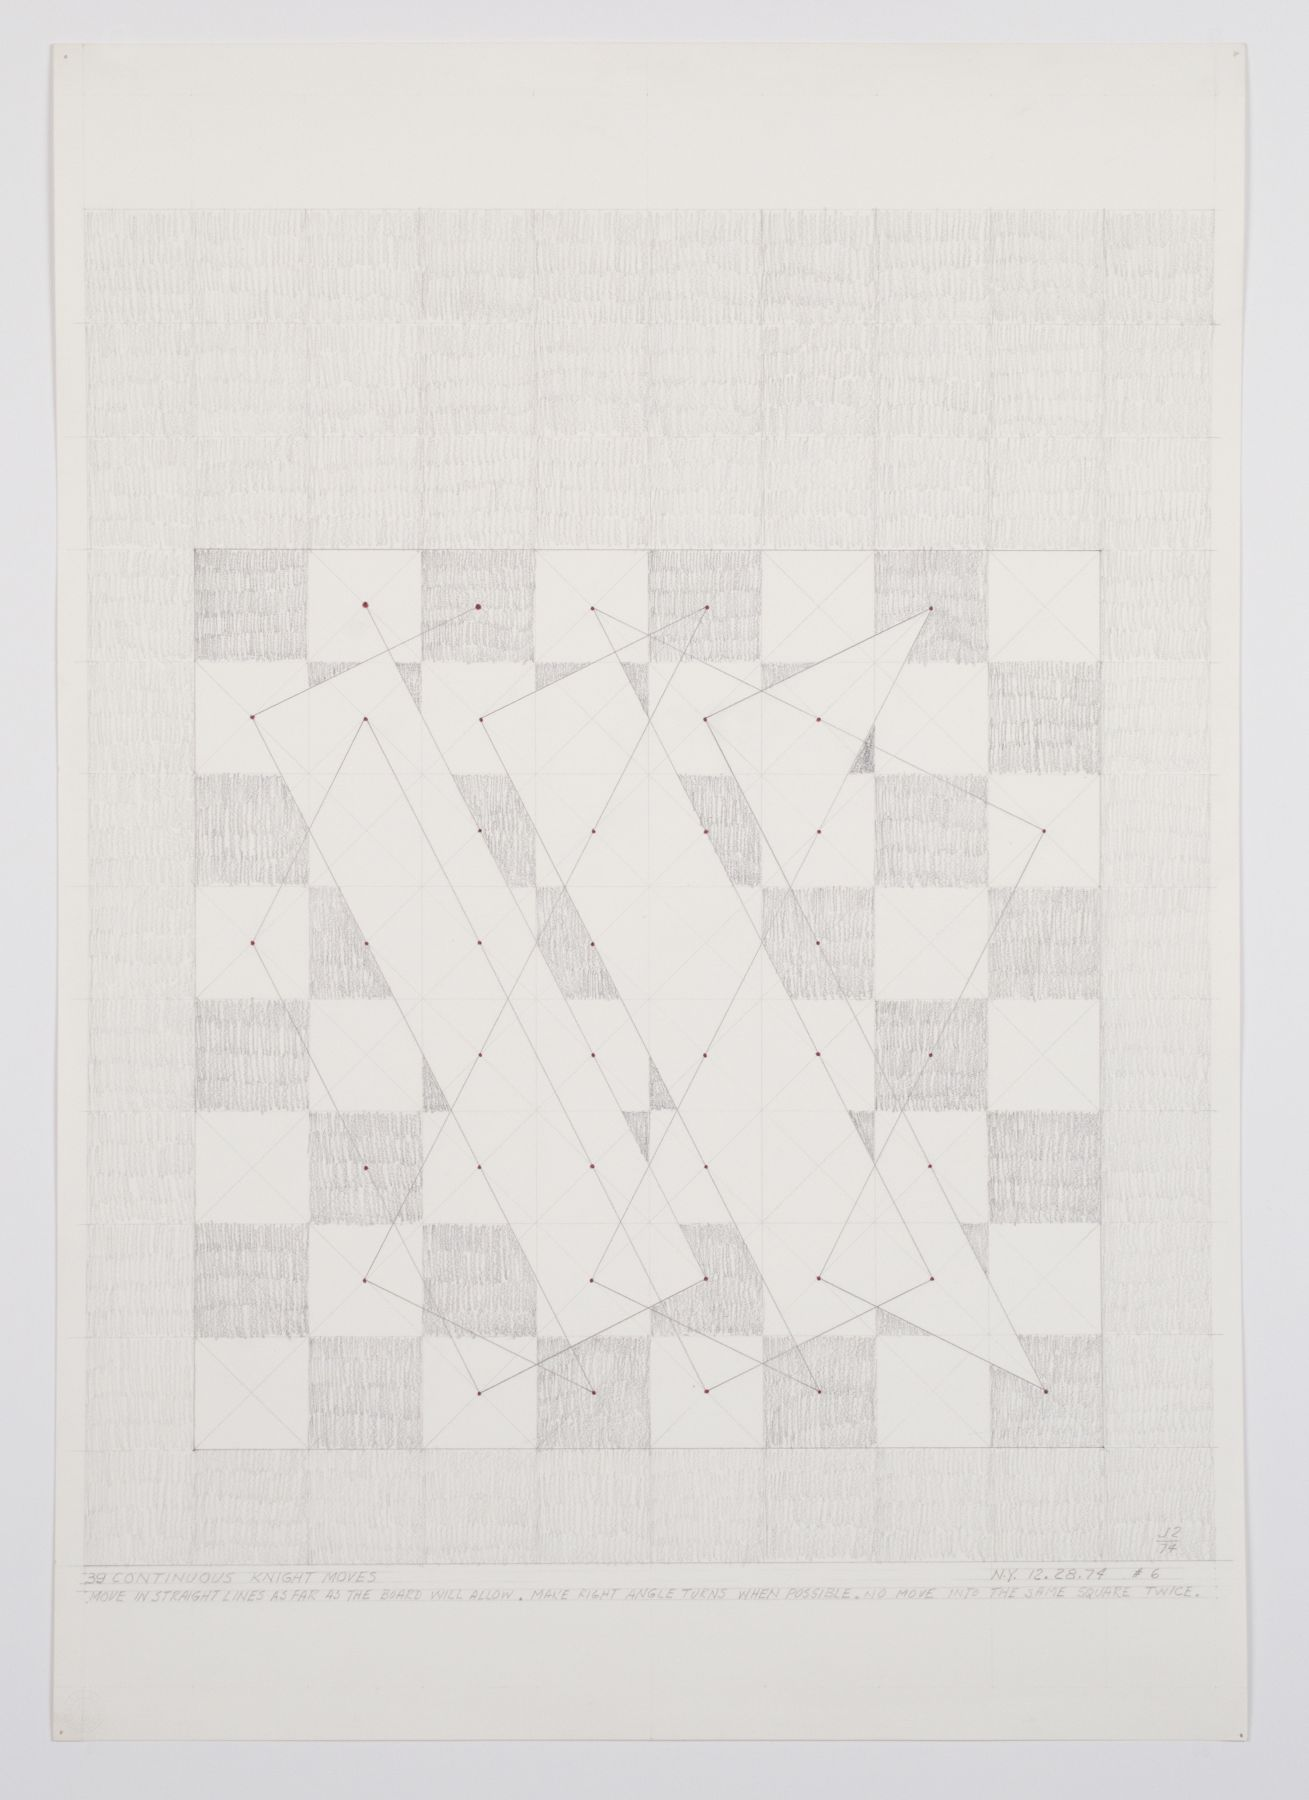 39 Continuous Knight Moves (NY 12-28-74 #6), 1974, Graphite on paper